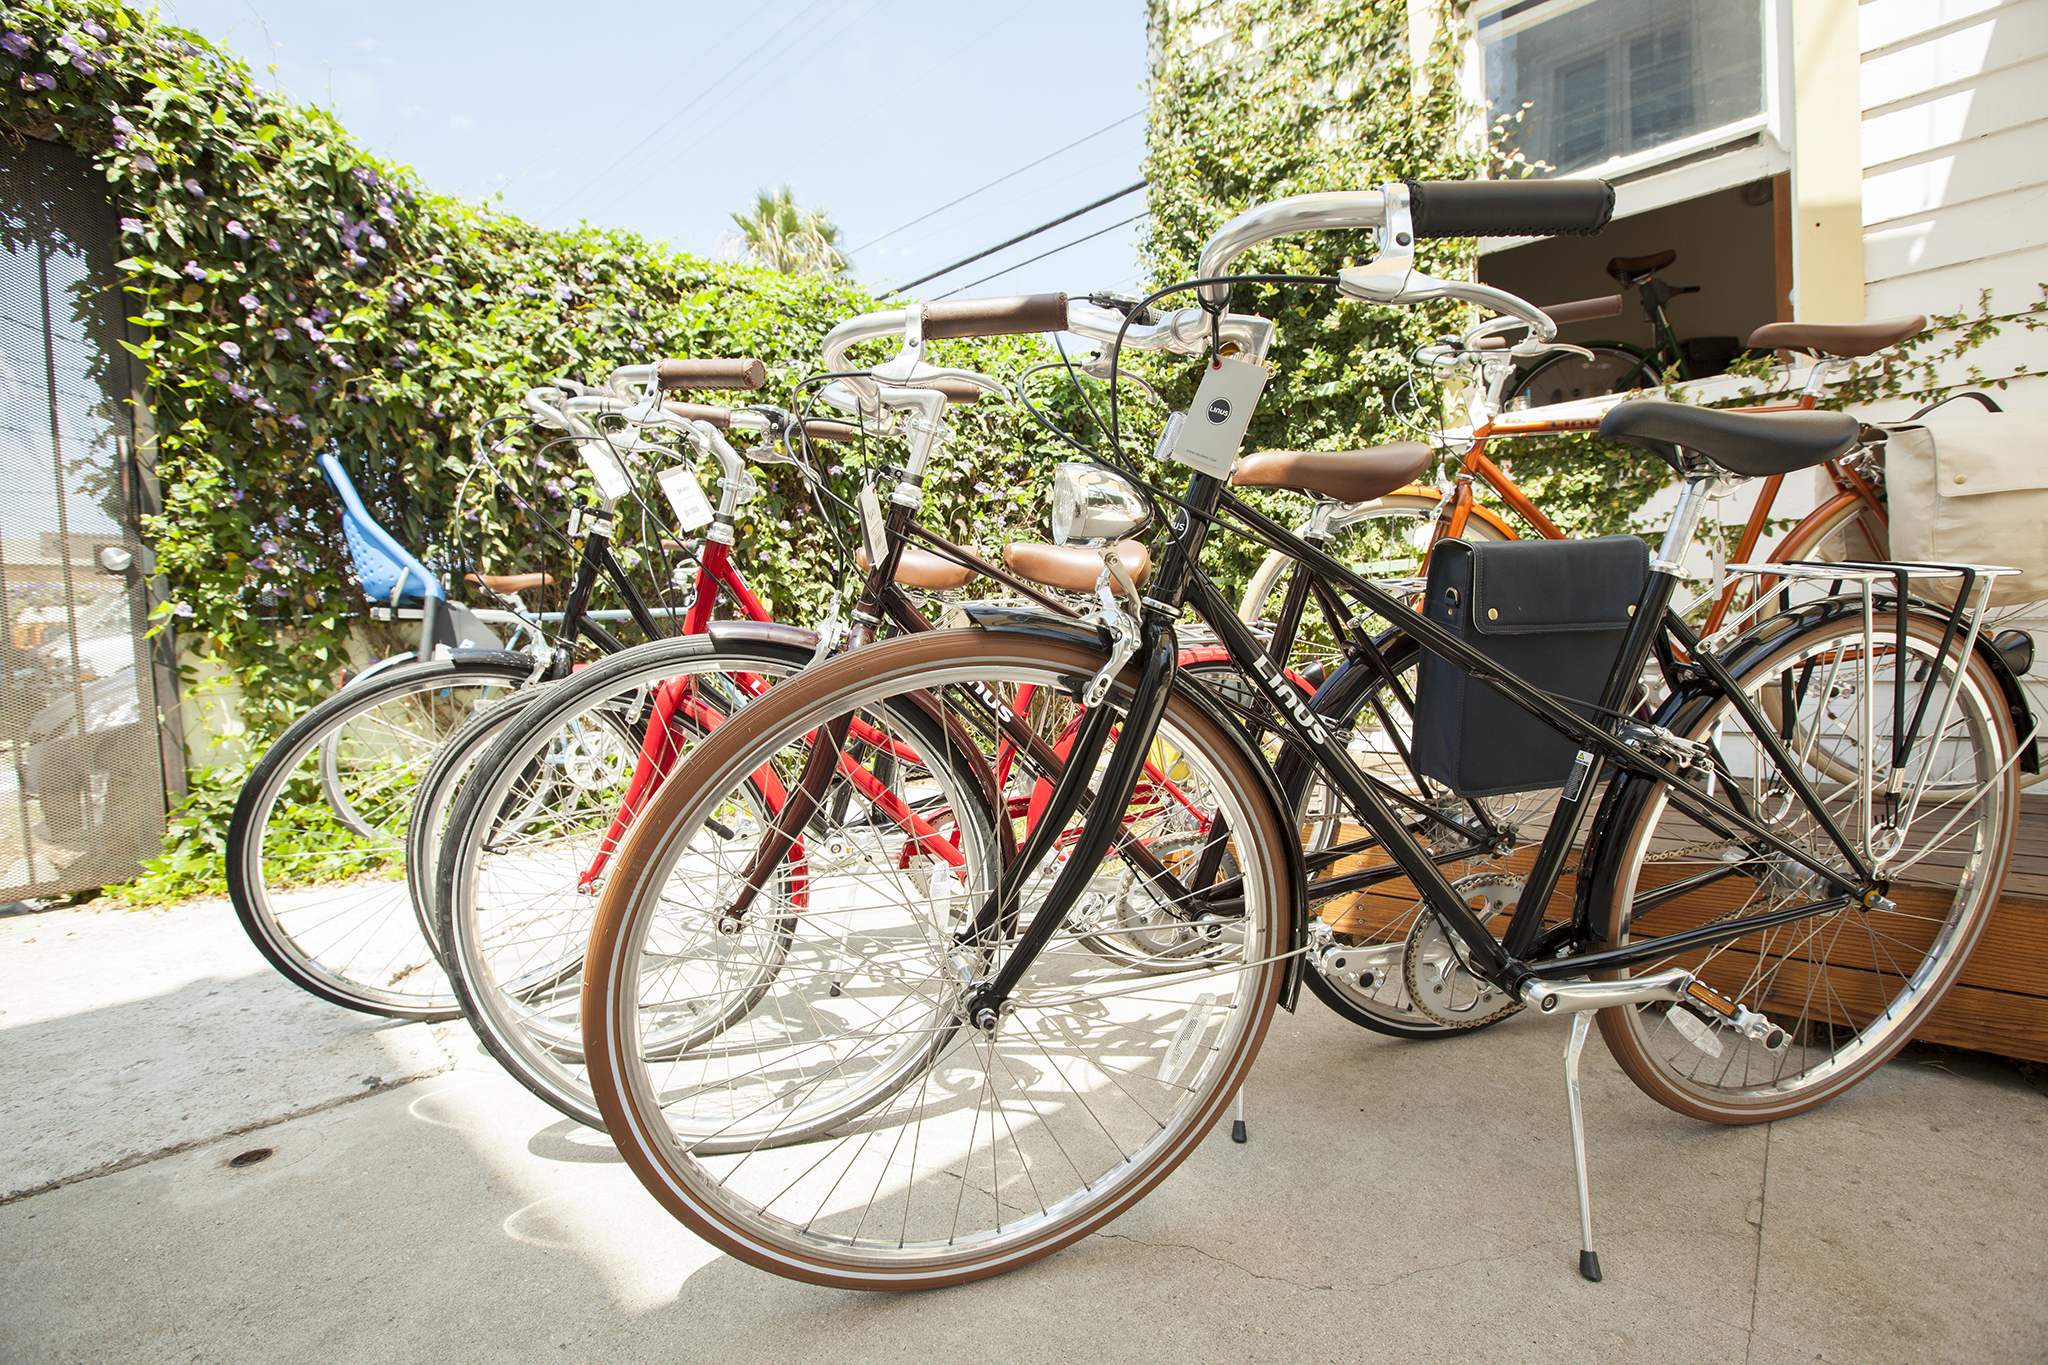 Spend a day on beachy Abbot Kinney